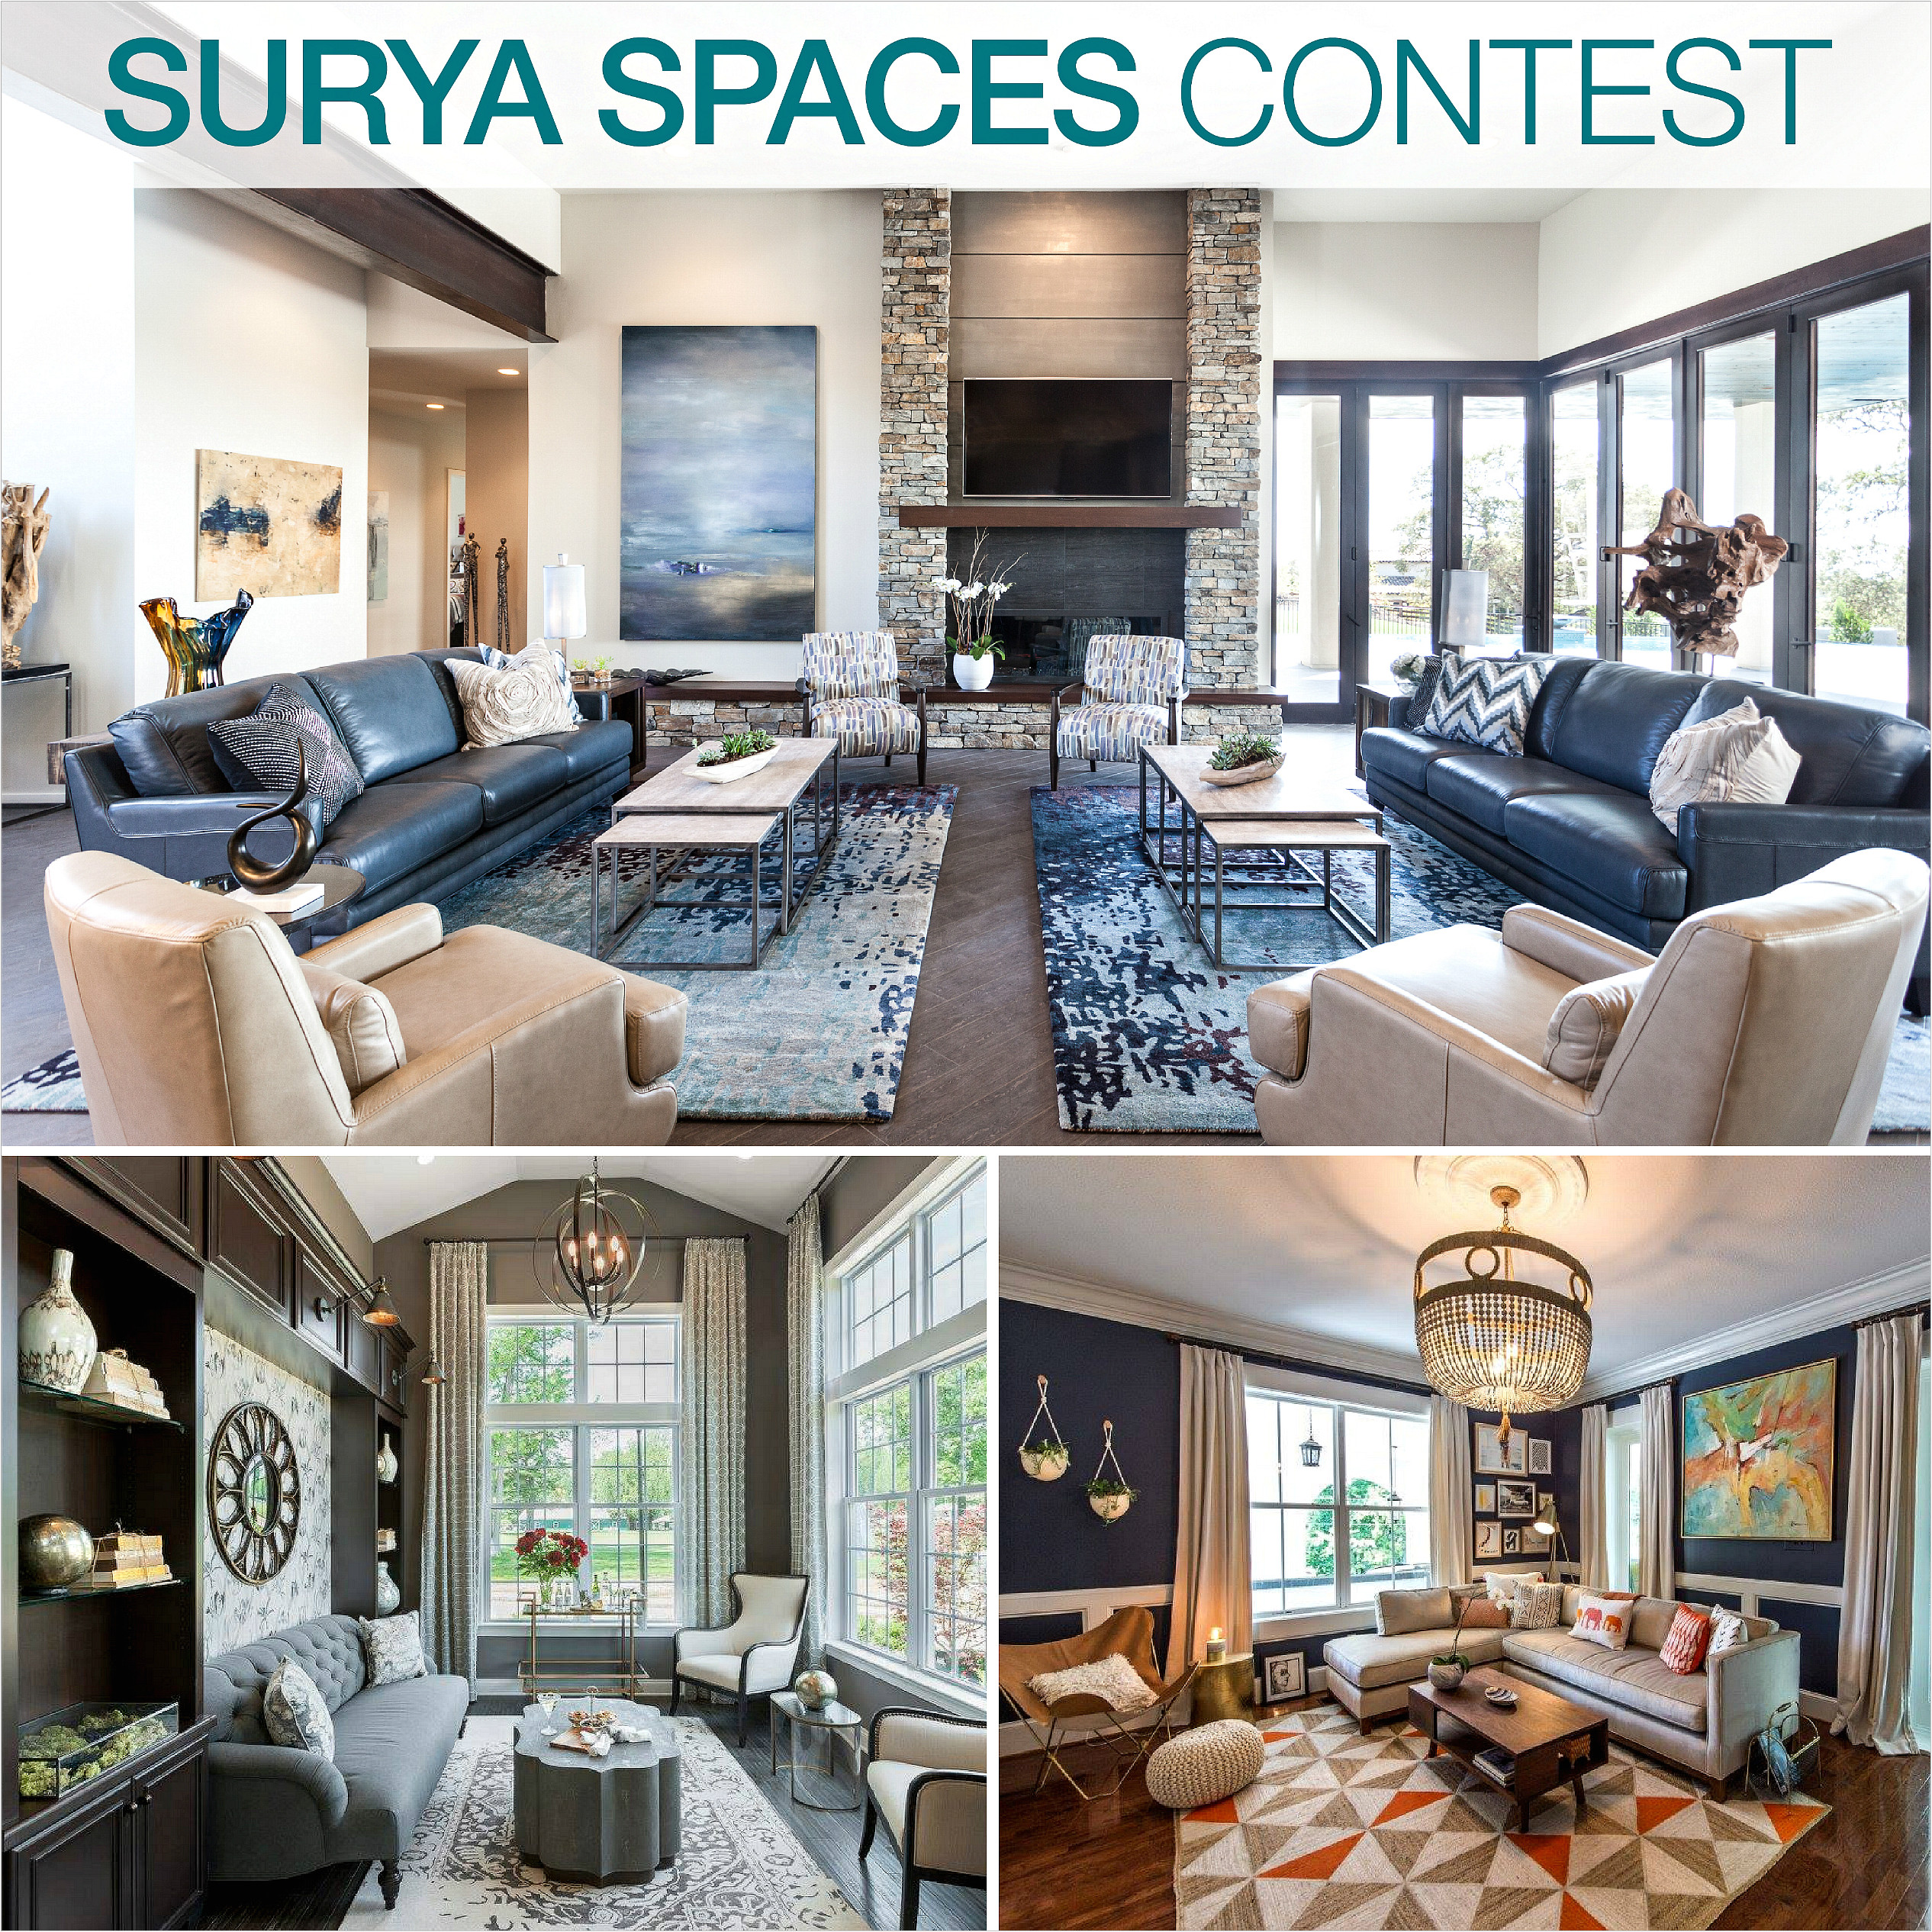 surya has named the winners of the third round of its popular surya spaces contest in early july the brand invited its customers to submit photos of their